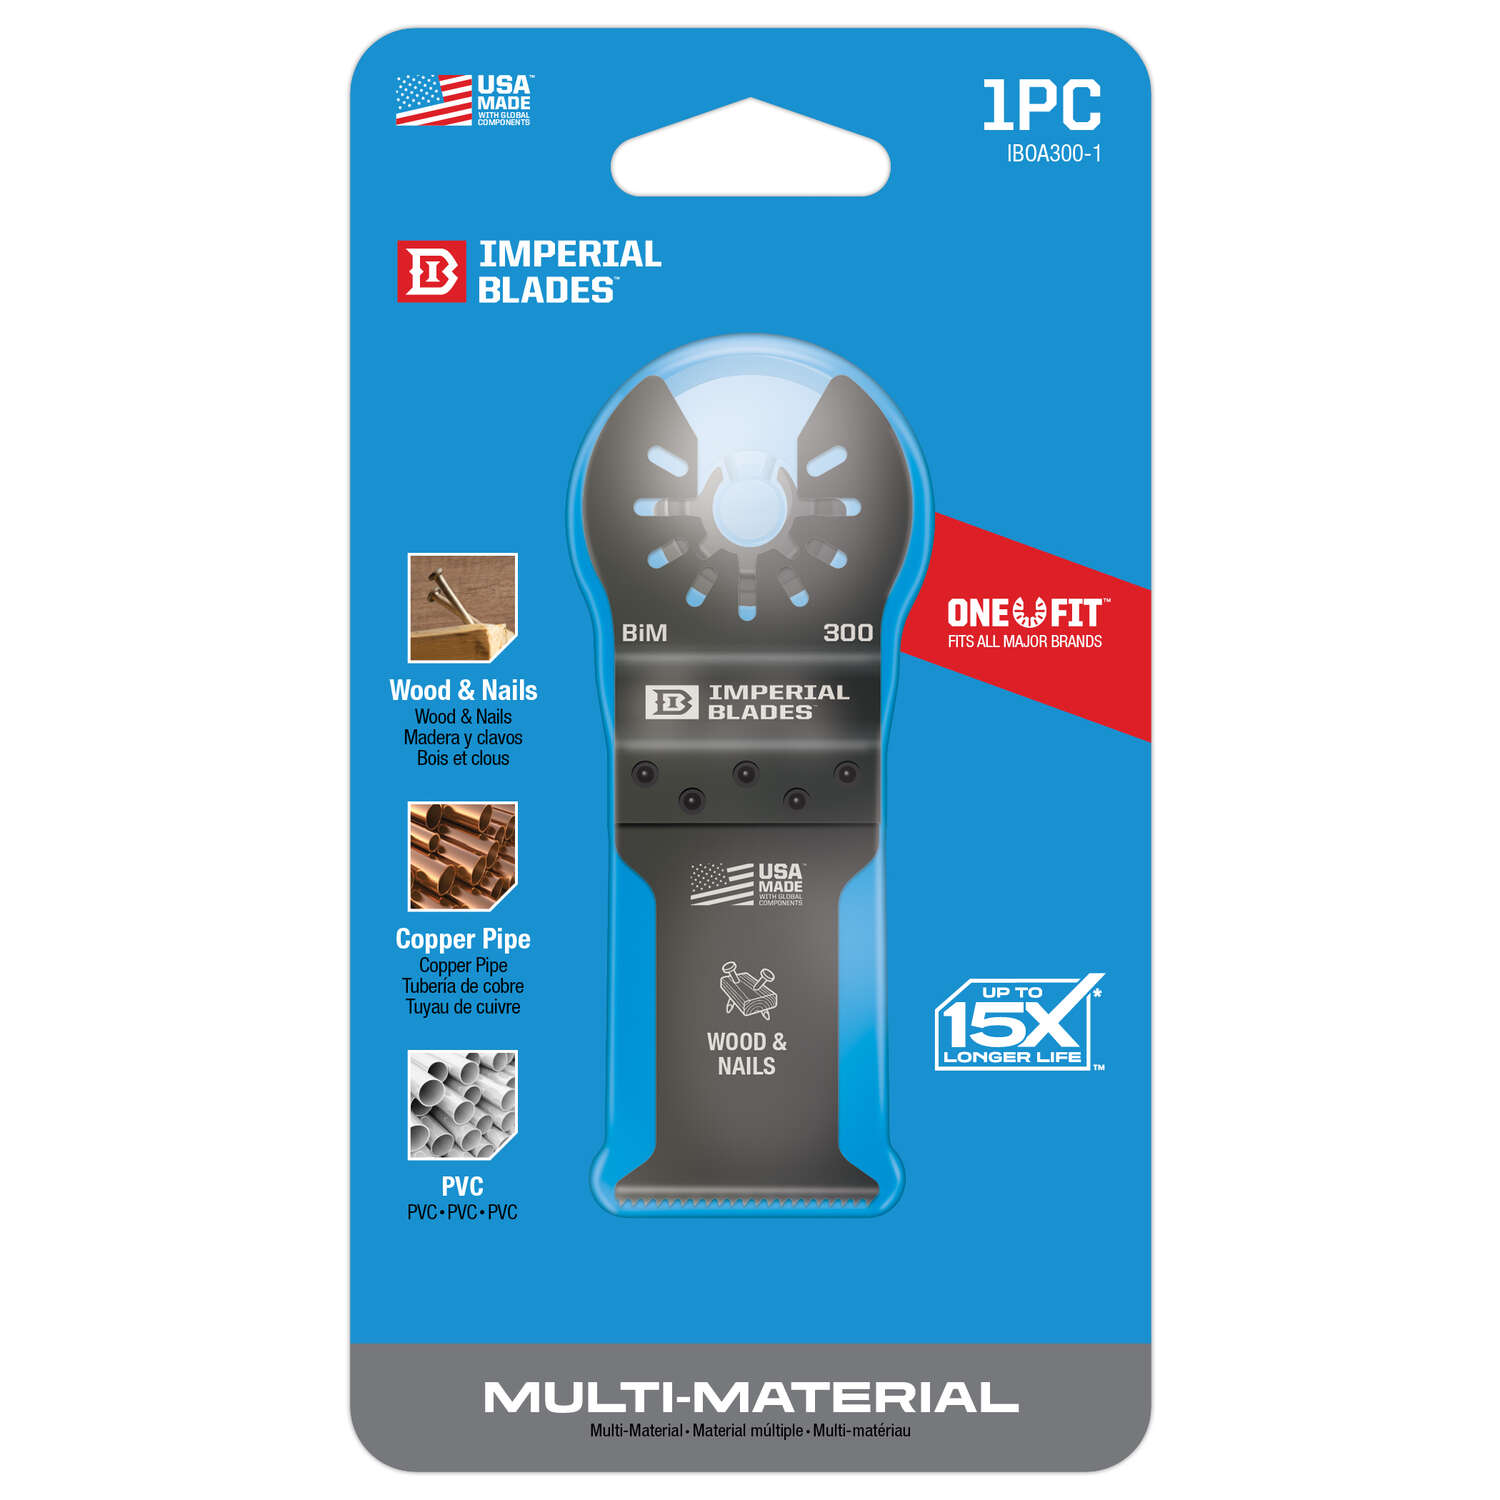 Imperial Blades One Fit 3-5/8 in. L x 1-3/8 in. Dia. Bi-Metal Oscillating Saw Blade 1 pk